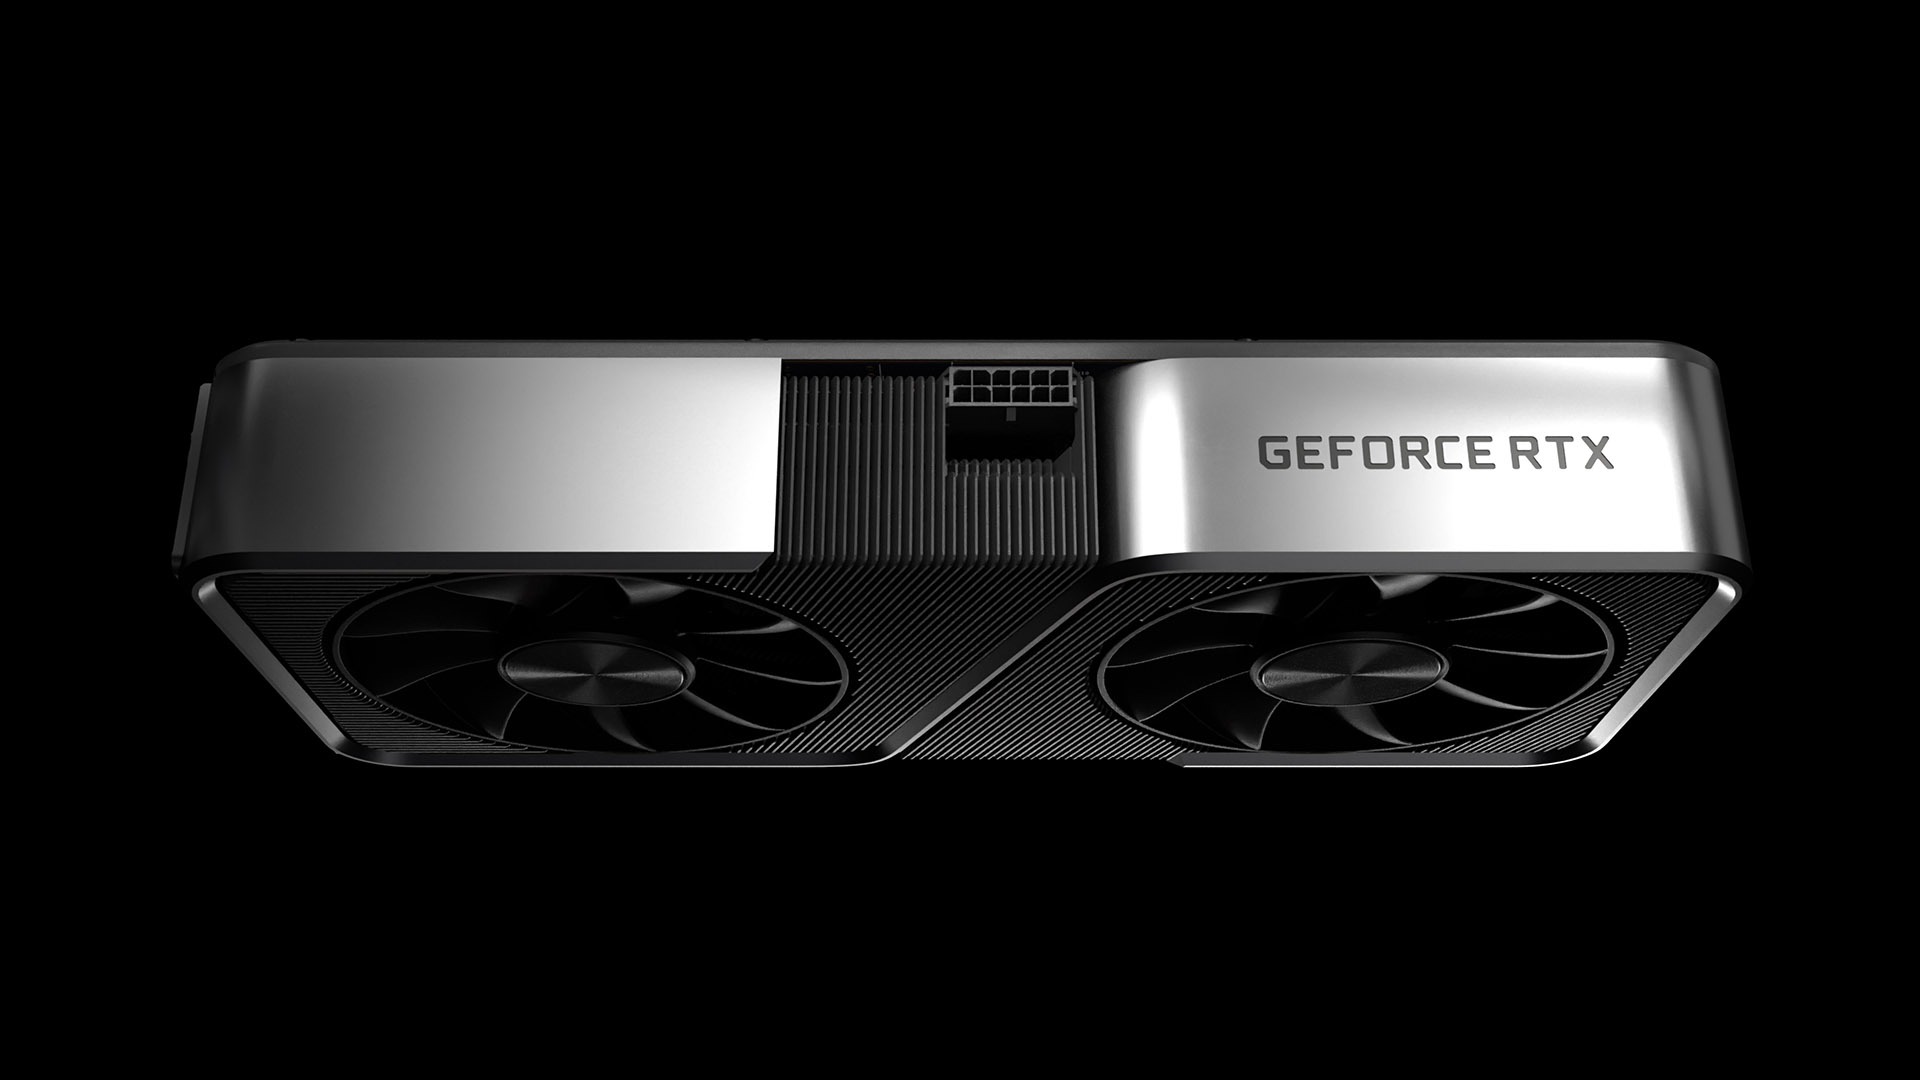 Nvidia has hinted a GeForce RTX 3080 Ti revelation for May 31st